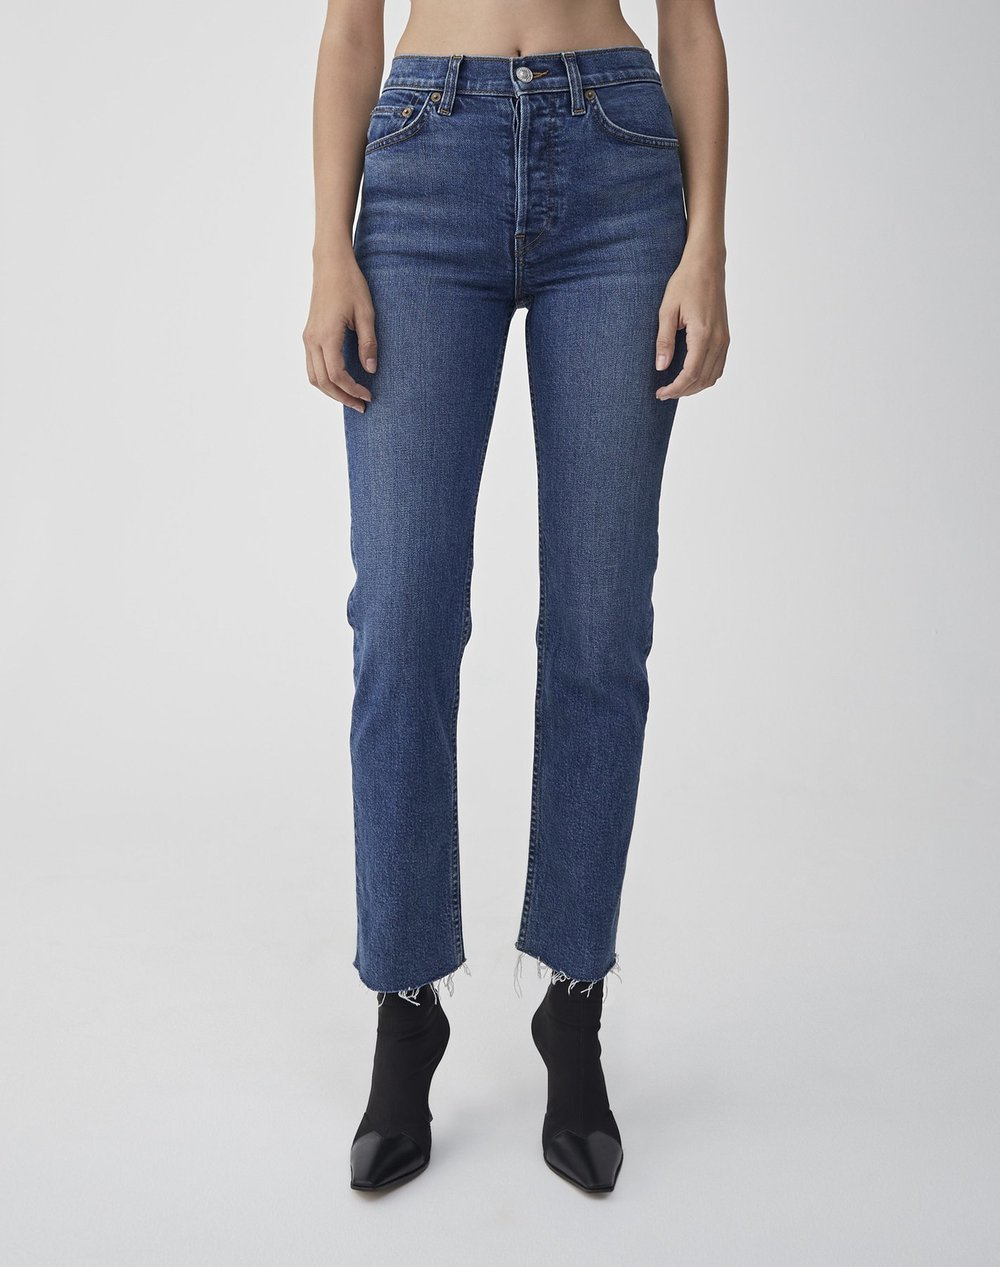 Re/Done Levi's - I love every pair of jeans on the Re/Done site, and I have been dying to get my hands on a pair.